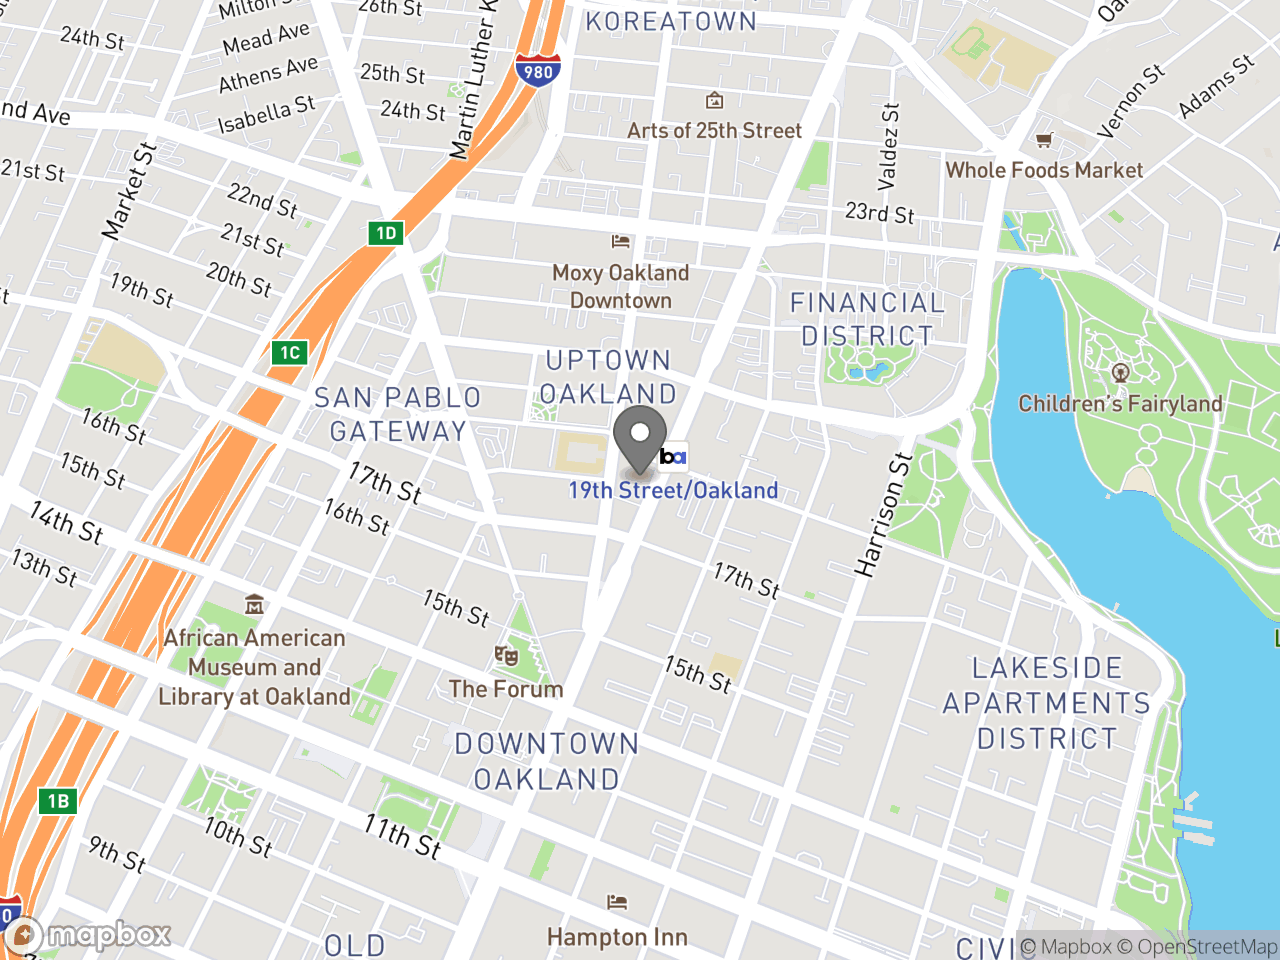 Map location for June 24, 2019 Special Planning Commission Meeting Downtown Oakland Specific Plan Implementation Intensive (Part I of II), located at 1721 Broadway in Oakland, CA 94612